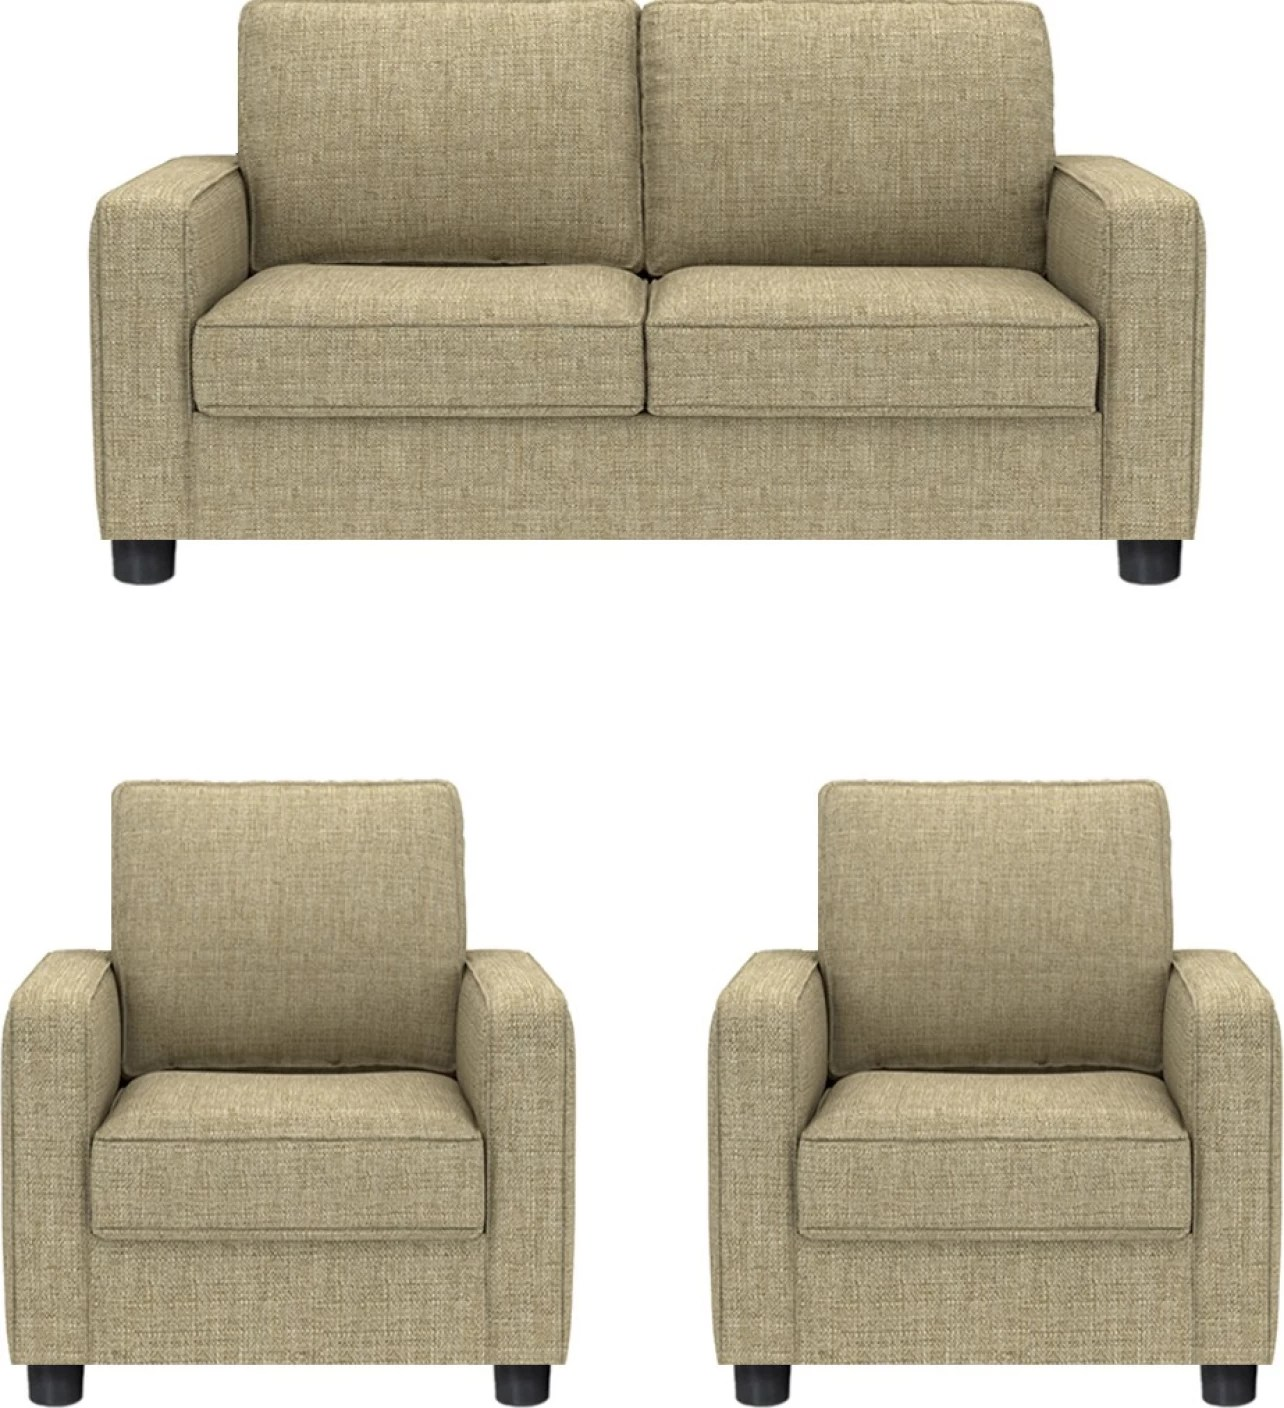 R K Sofa Set Rajkot Gujarat Gioteak Fabric 2 43 1 43 1 Beige Sofa Set Price In India